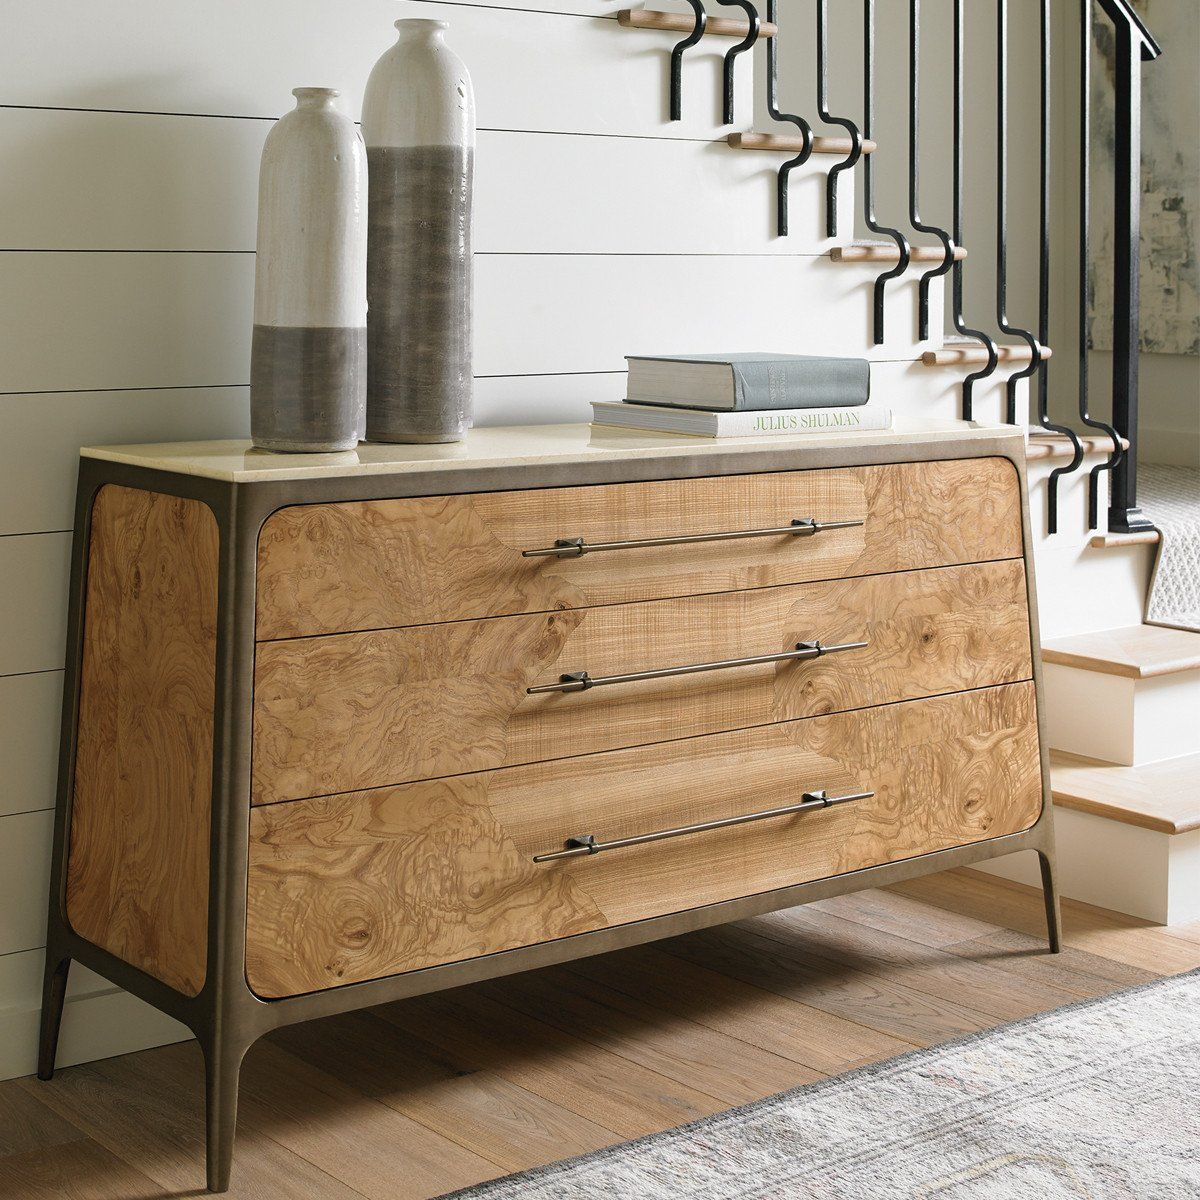 Poised perfection my torrance stone top dresser offers style and